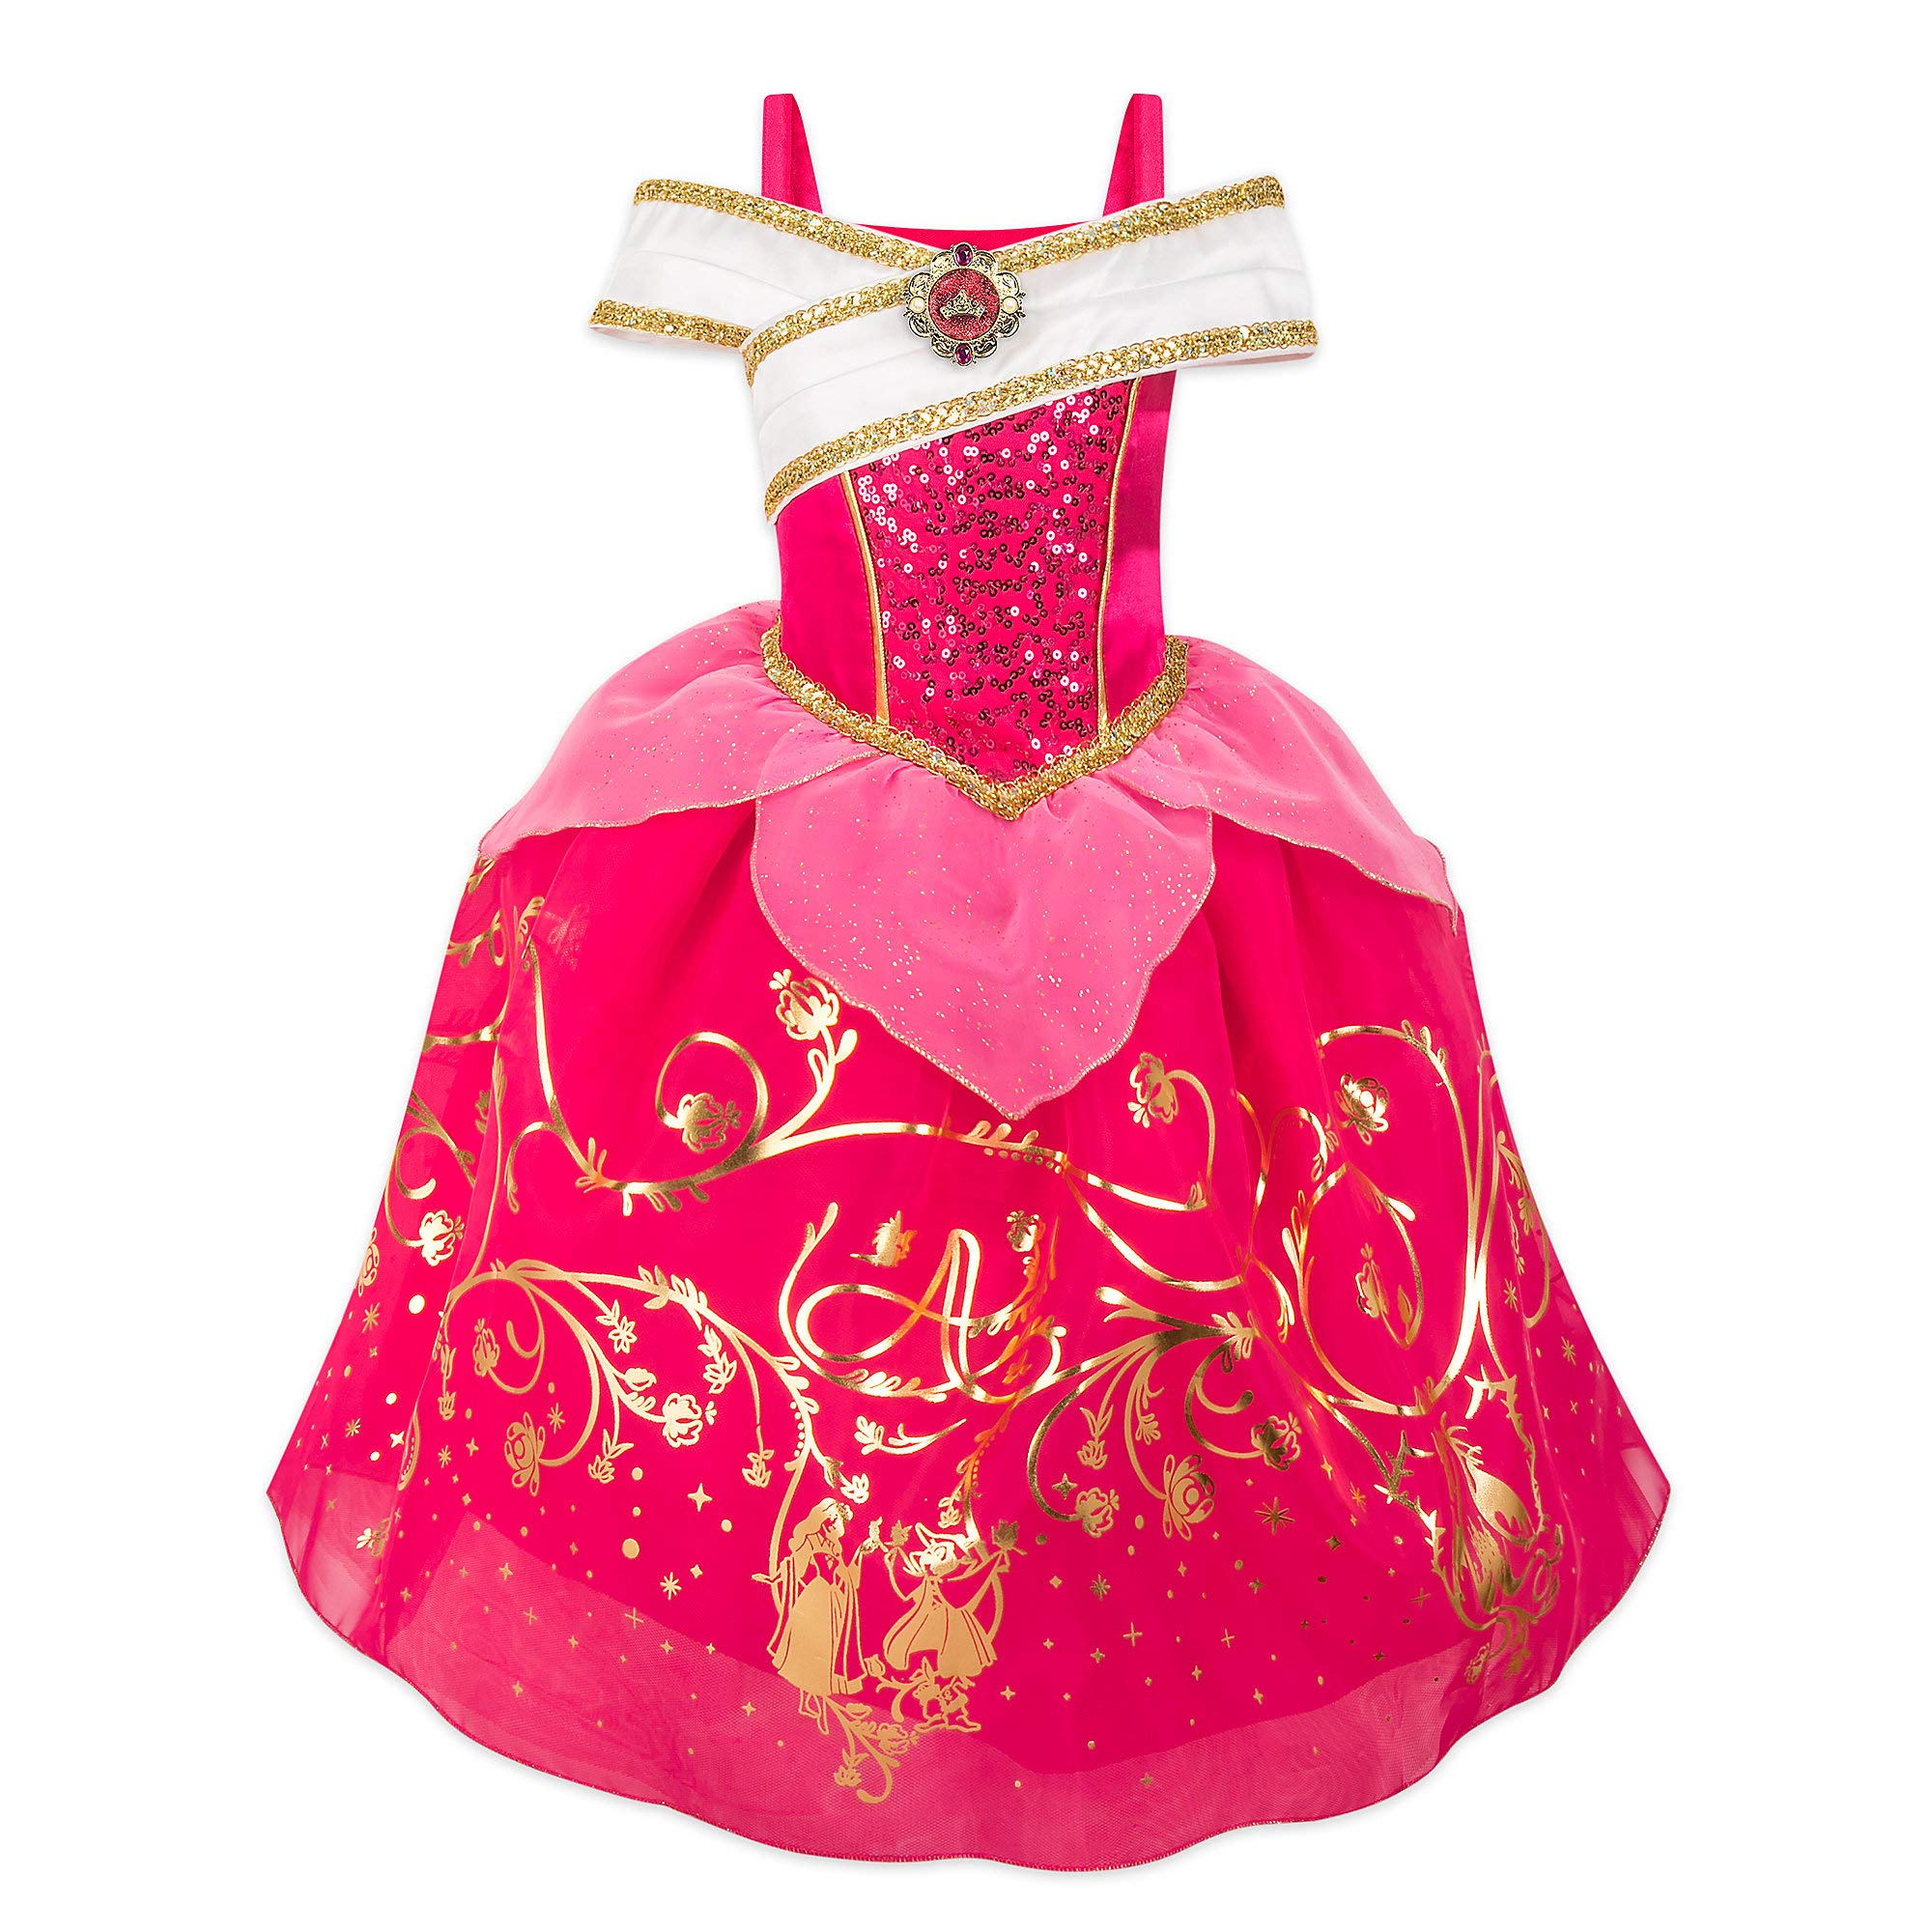 Disney Aurora Costume for Kids - Sleeping Beauty Size 5/6 Pink